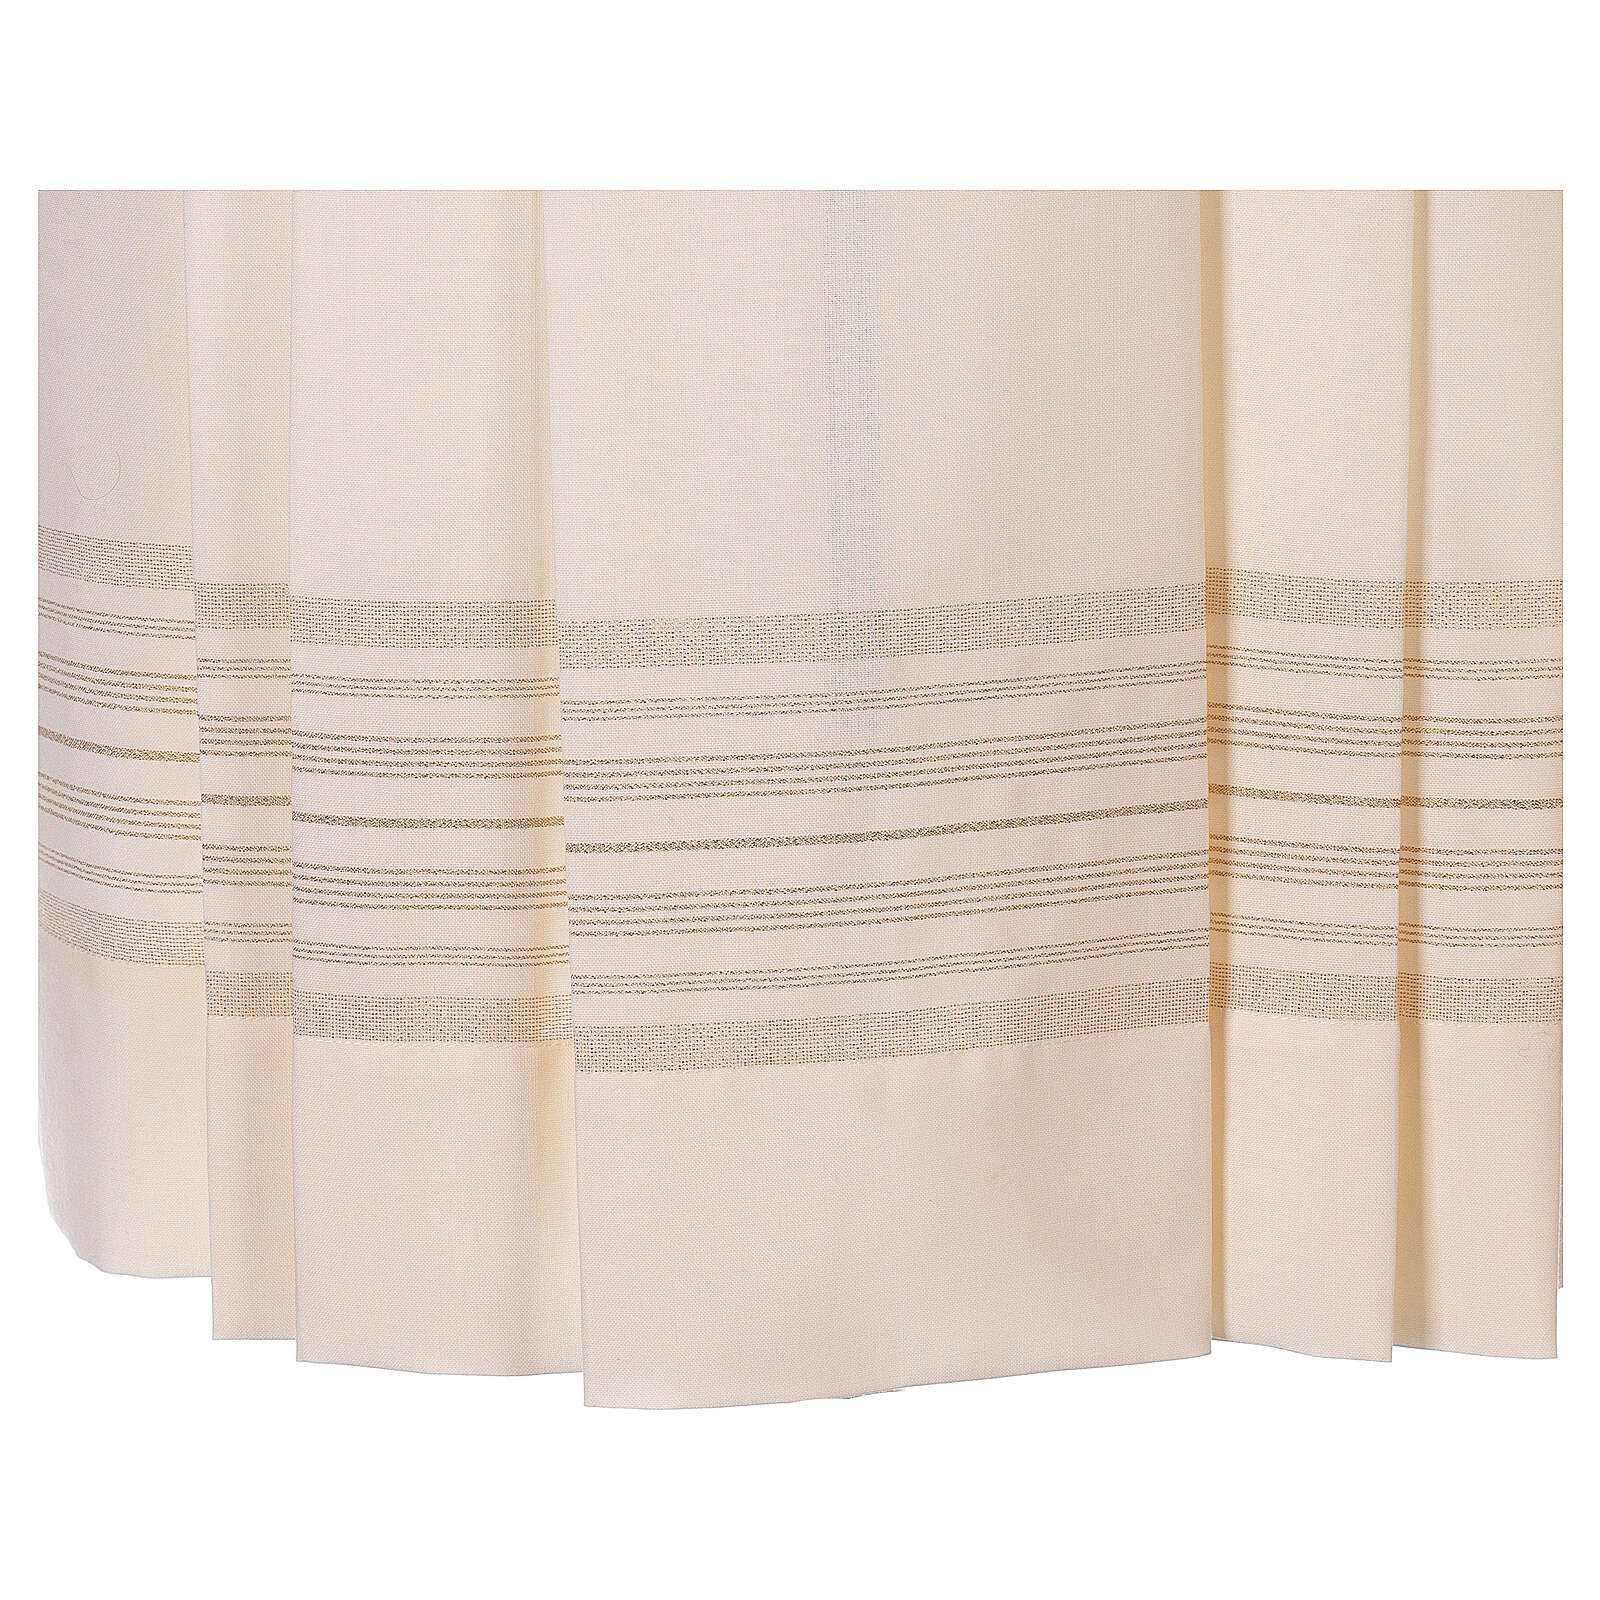 Ivory surplice with golden decorations, 55% polyester 45% wool 4